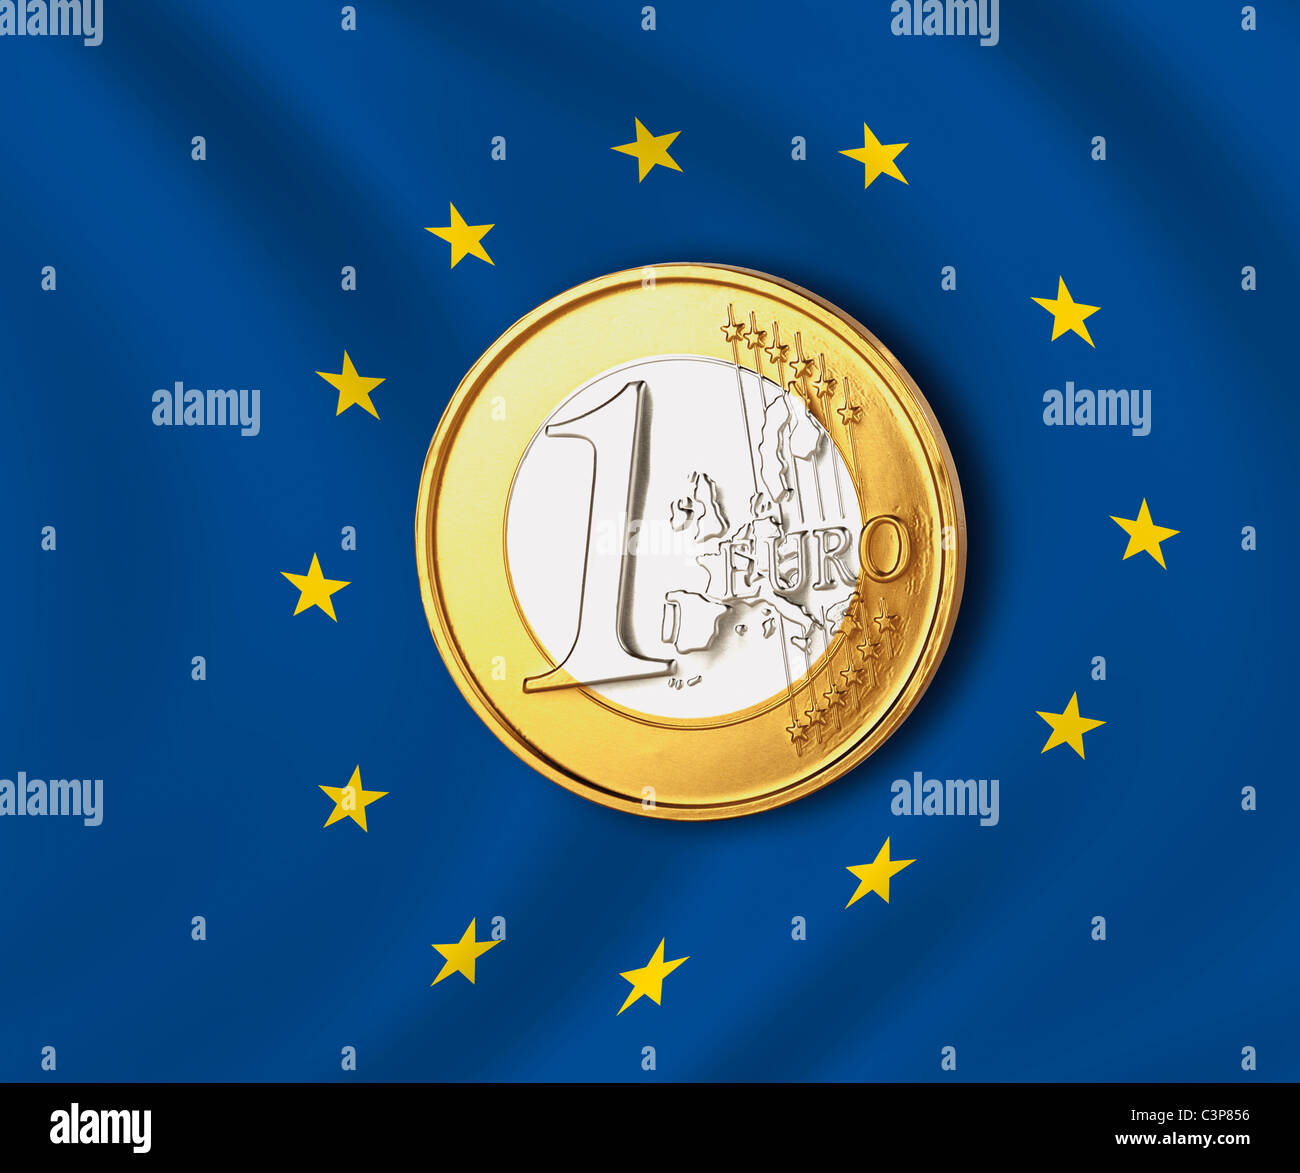 One euro coin against european union flag, close up - Stock Image